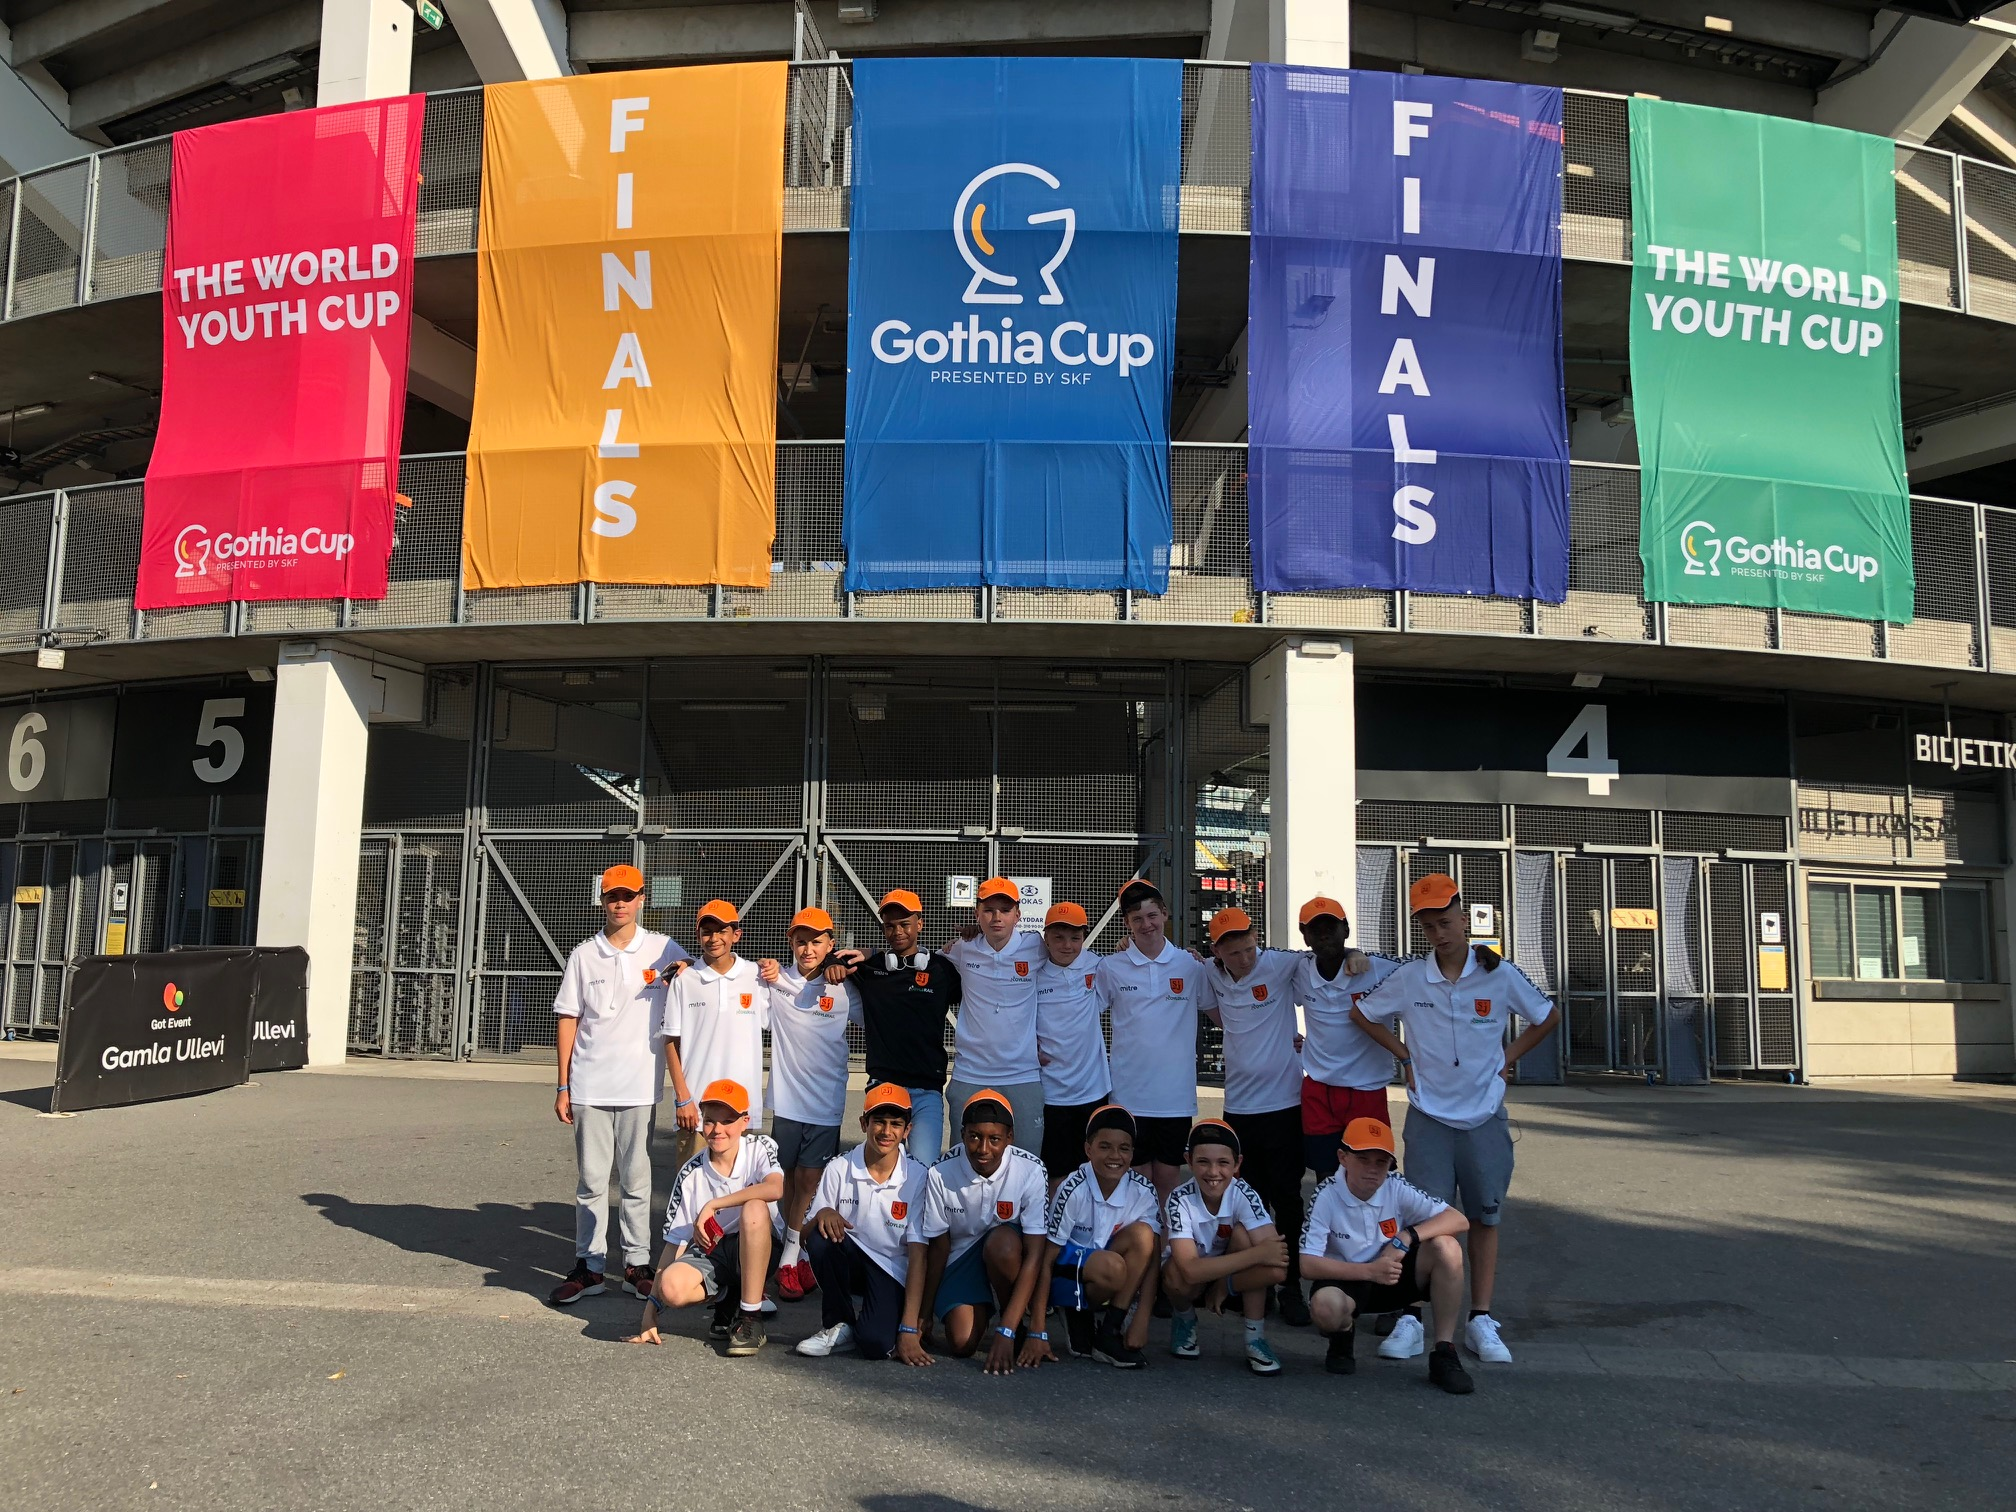 <a class=&quot;amazingslider-posttitle-link&quot; href=&quot;http://www.stjosephsfc.com/u12-lions-gothia-cup-world-youth-cup/&quot;>U12 Lions in the Gothia Cup - World Youth Cup</a>